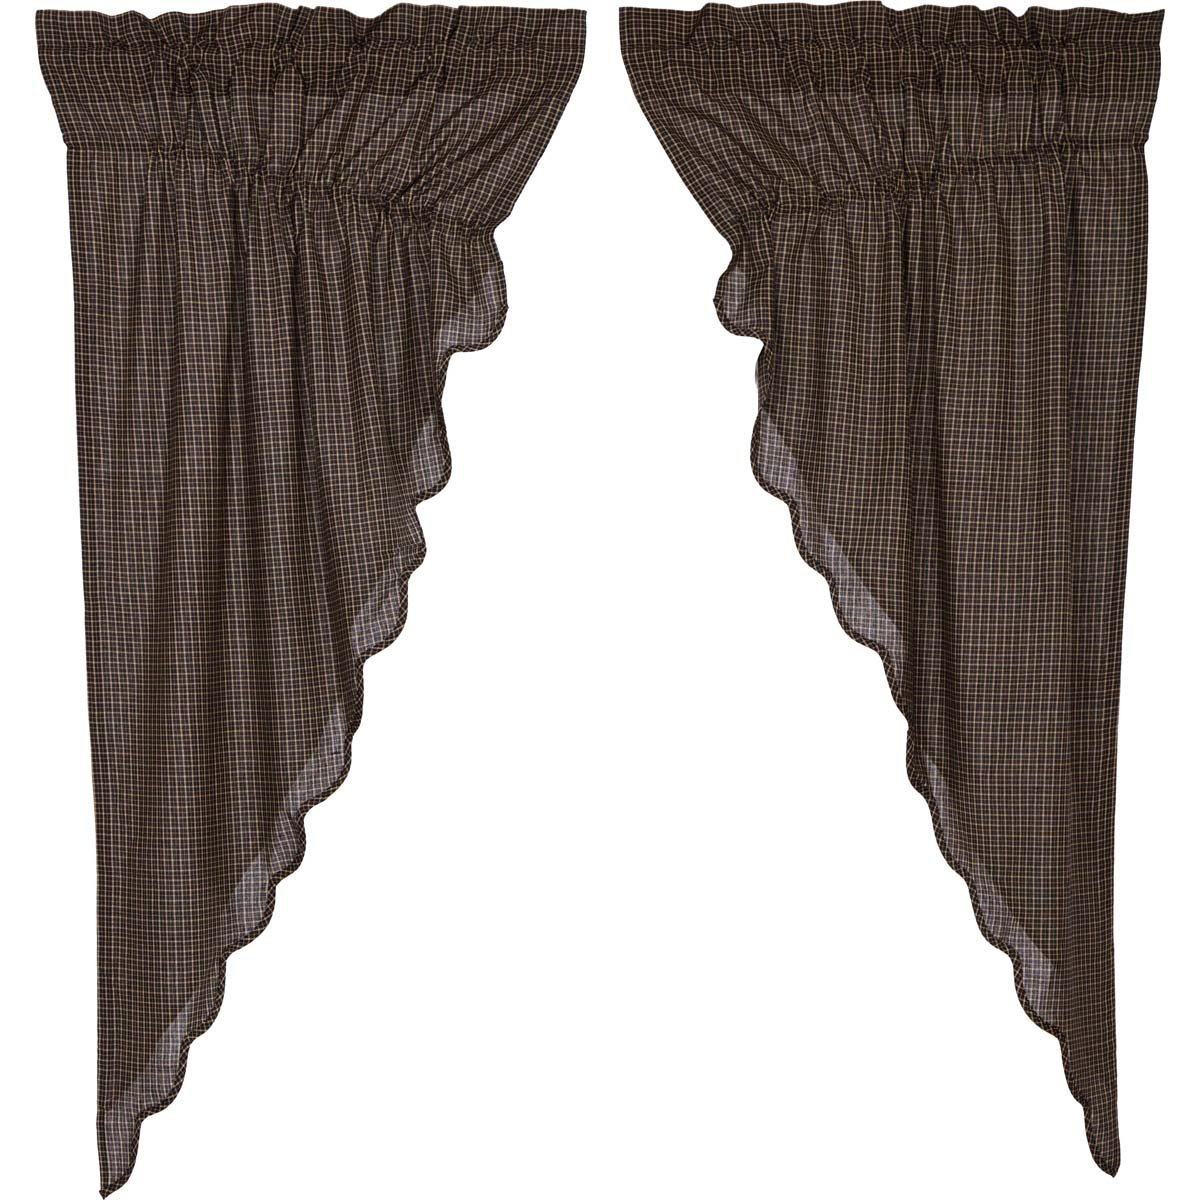 Kettle Grove Plaid Prairie Short Panel Curtain Scalloped Set Pertaining To Check Scalloped Swag Sets (Photo 1 of 20)